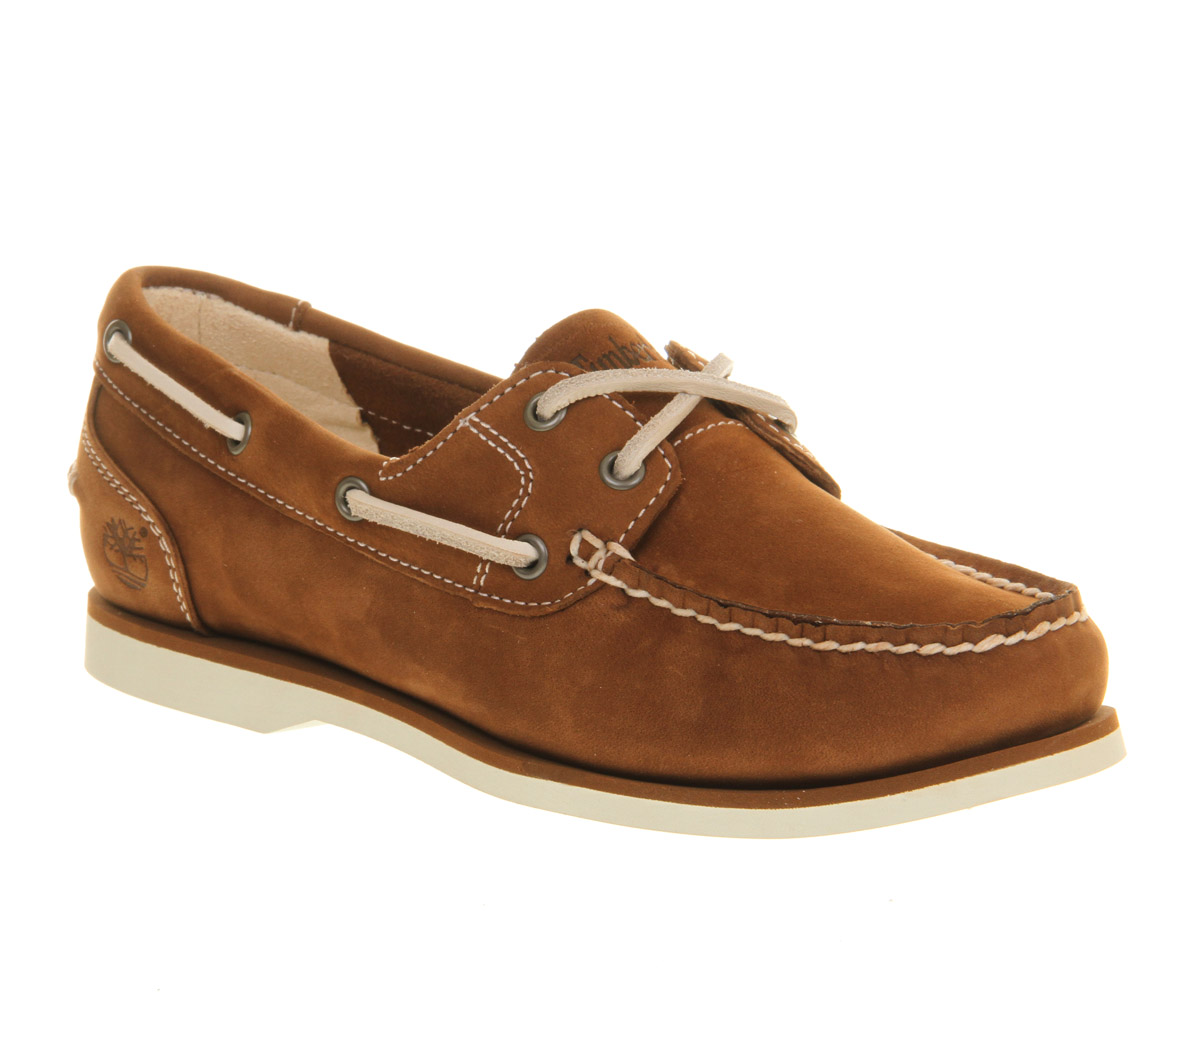 timberland womens boat shoes brown